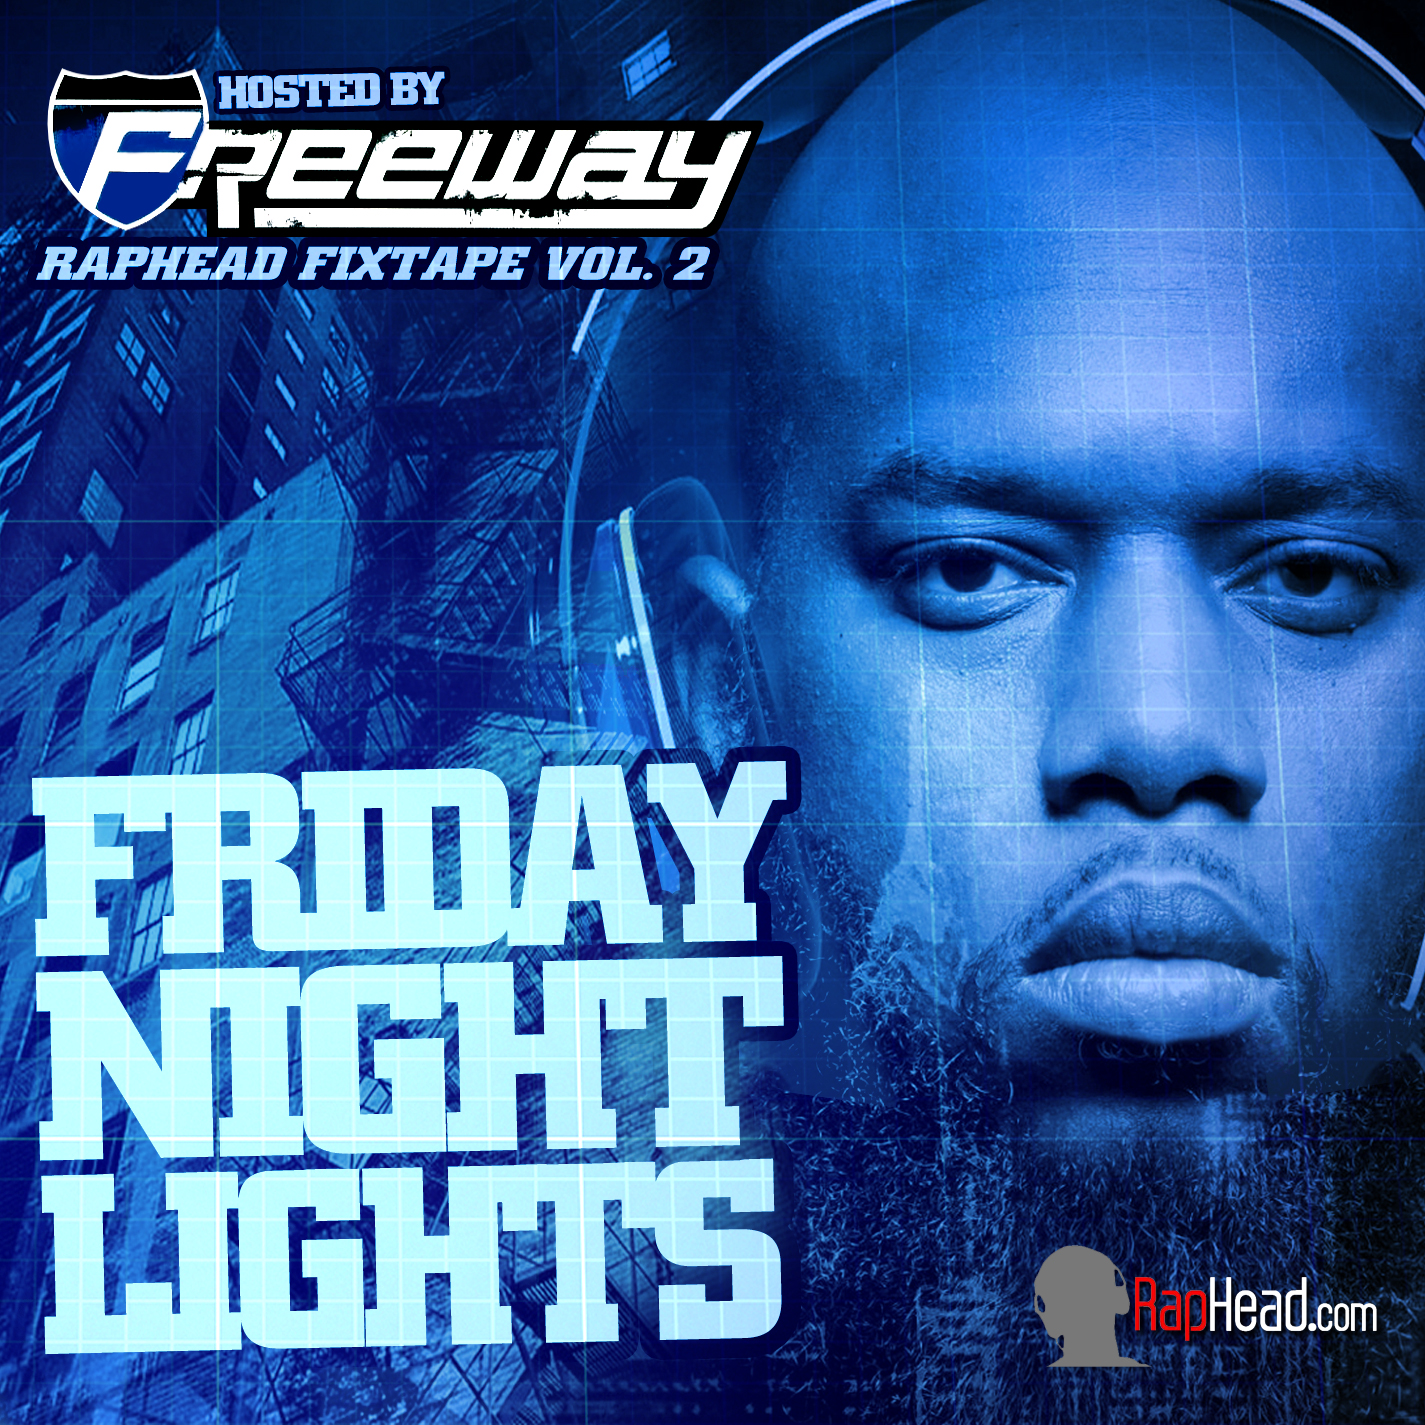 FREEWAY MIXTAPE COVER Freeway Friday Night Lights Cover [Design By IGMM1]